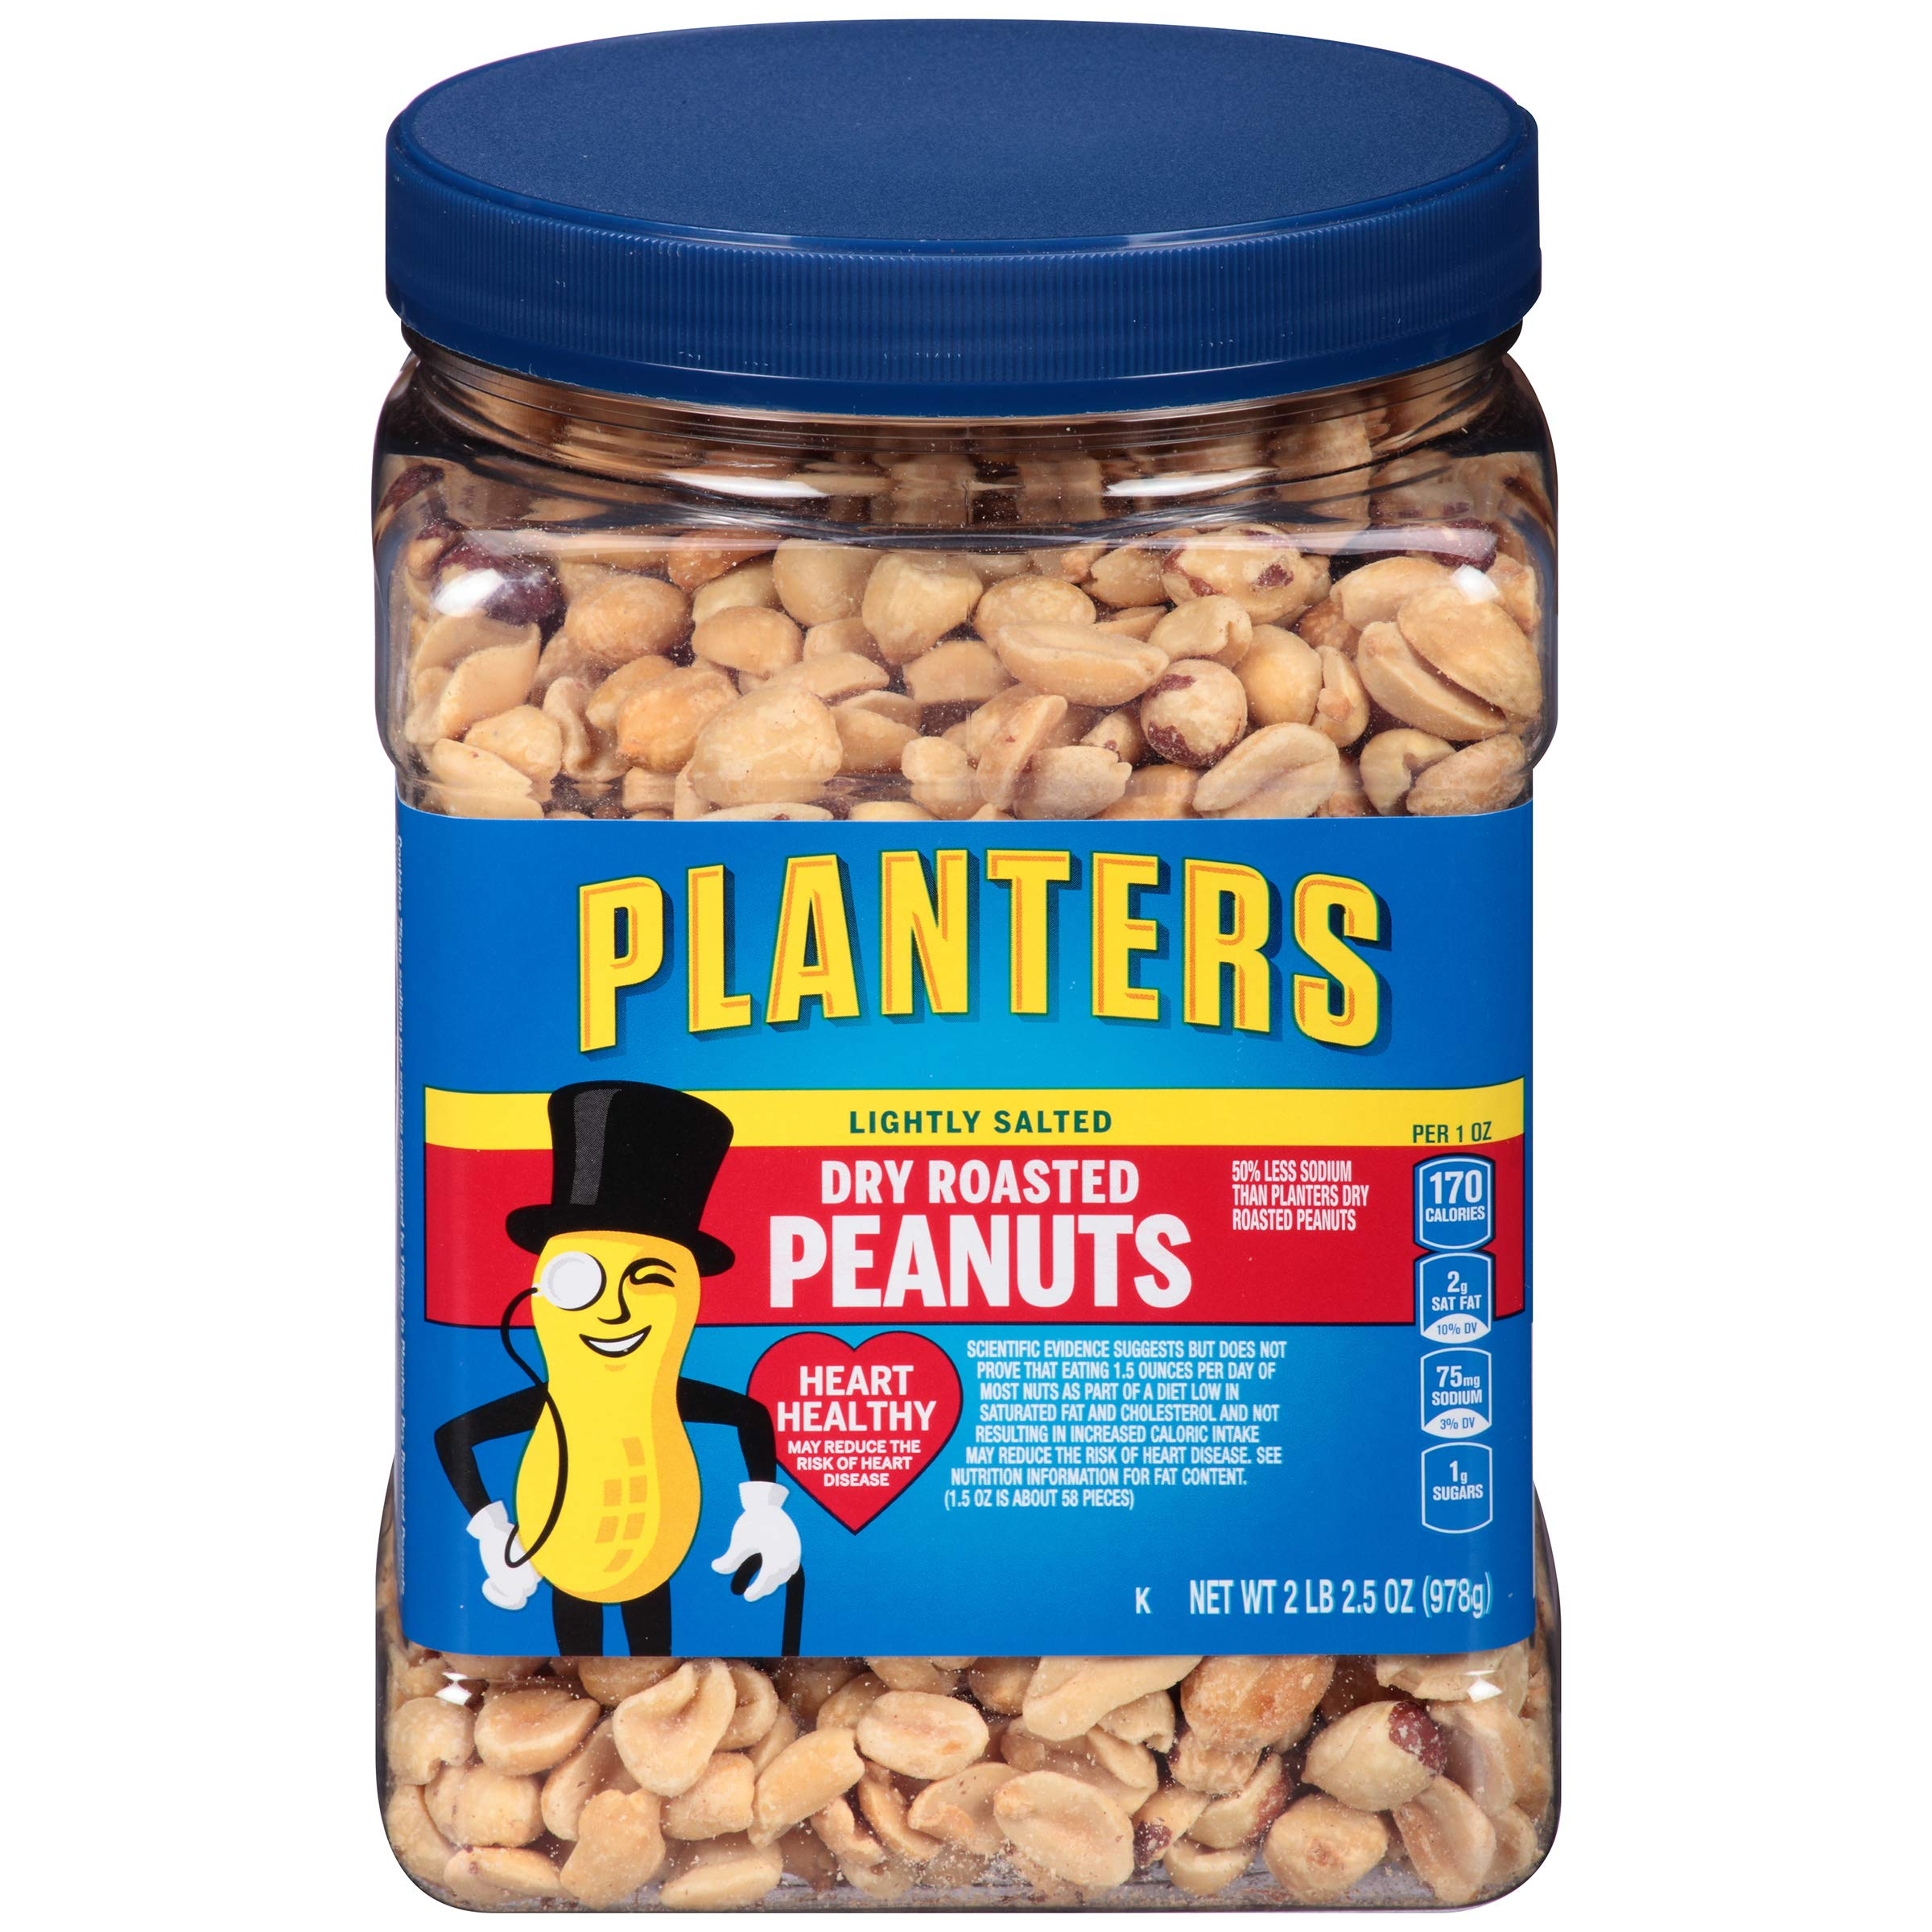 Planters Lightly Salted Dry Roasted Peanuts (2lb Canister, Pack of 6) by Planters